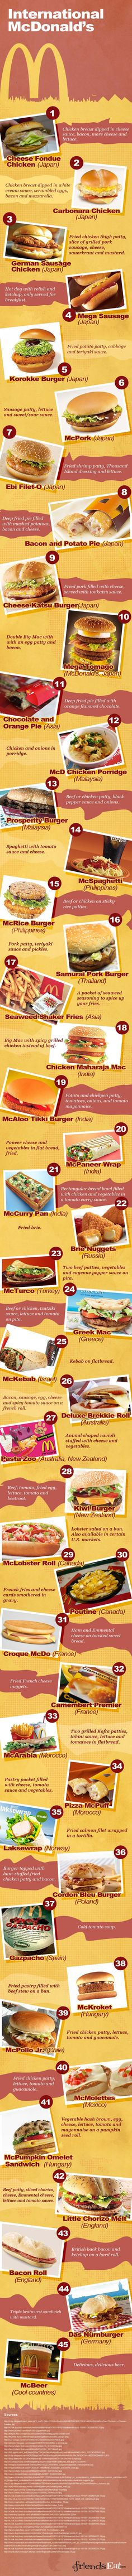 International McDonald (Infographic) why don't we get to eat such yummy things at our McDonald's????